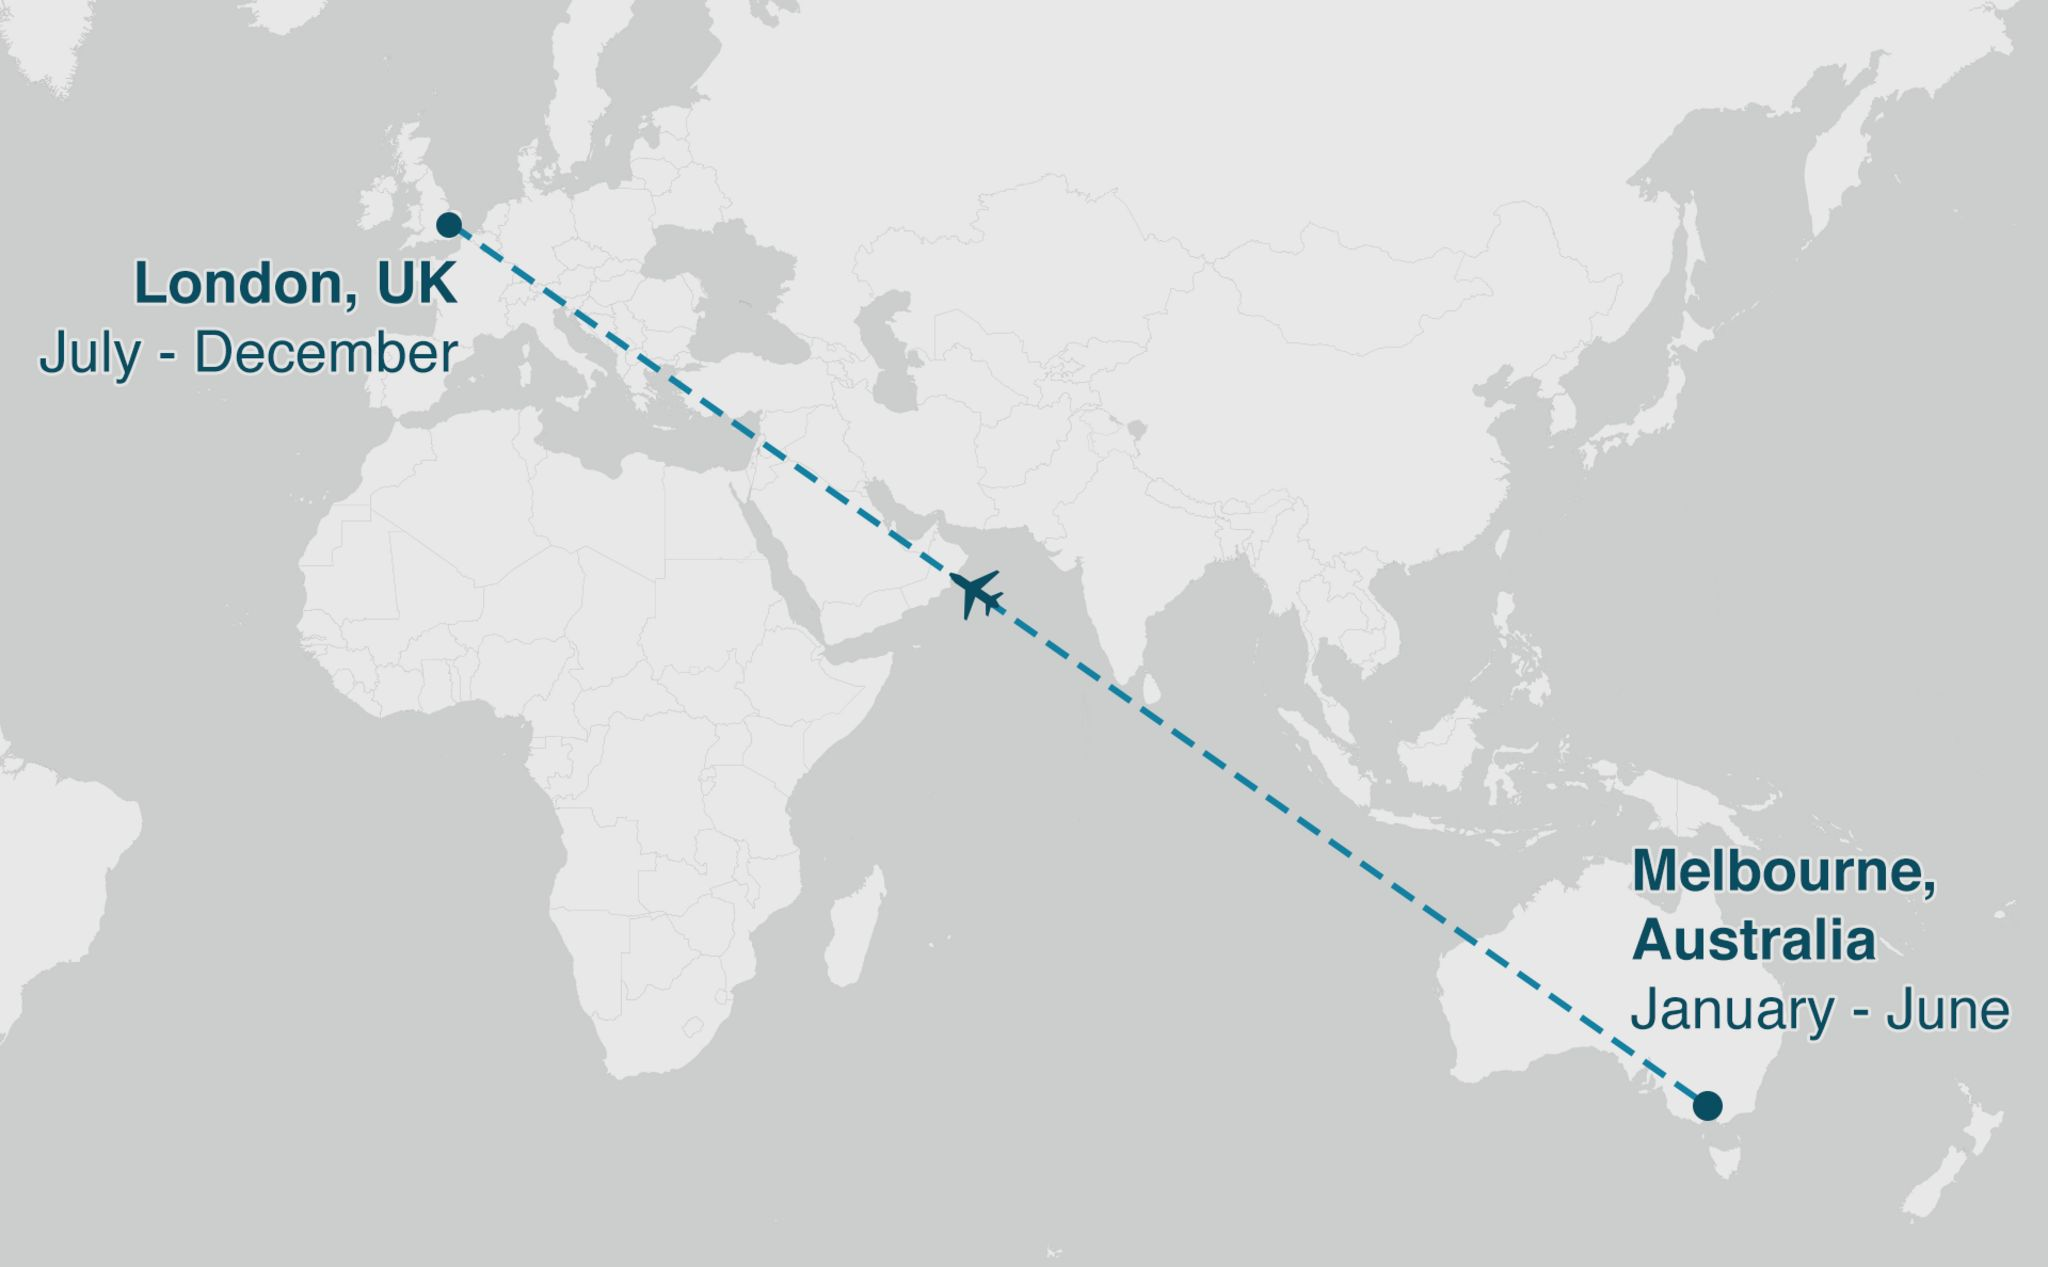 Map showing Melbourne to London